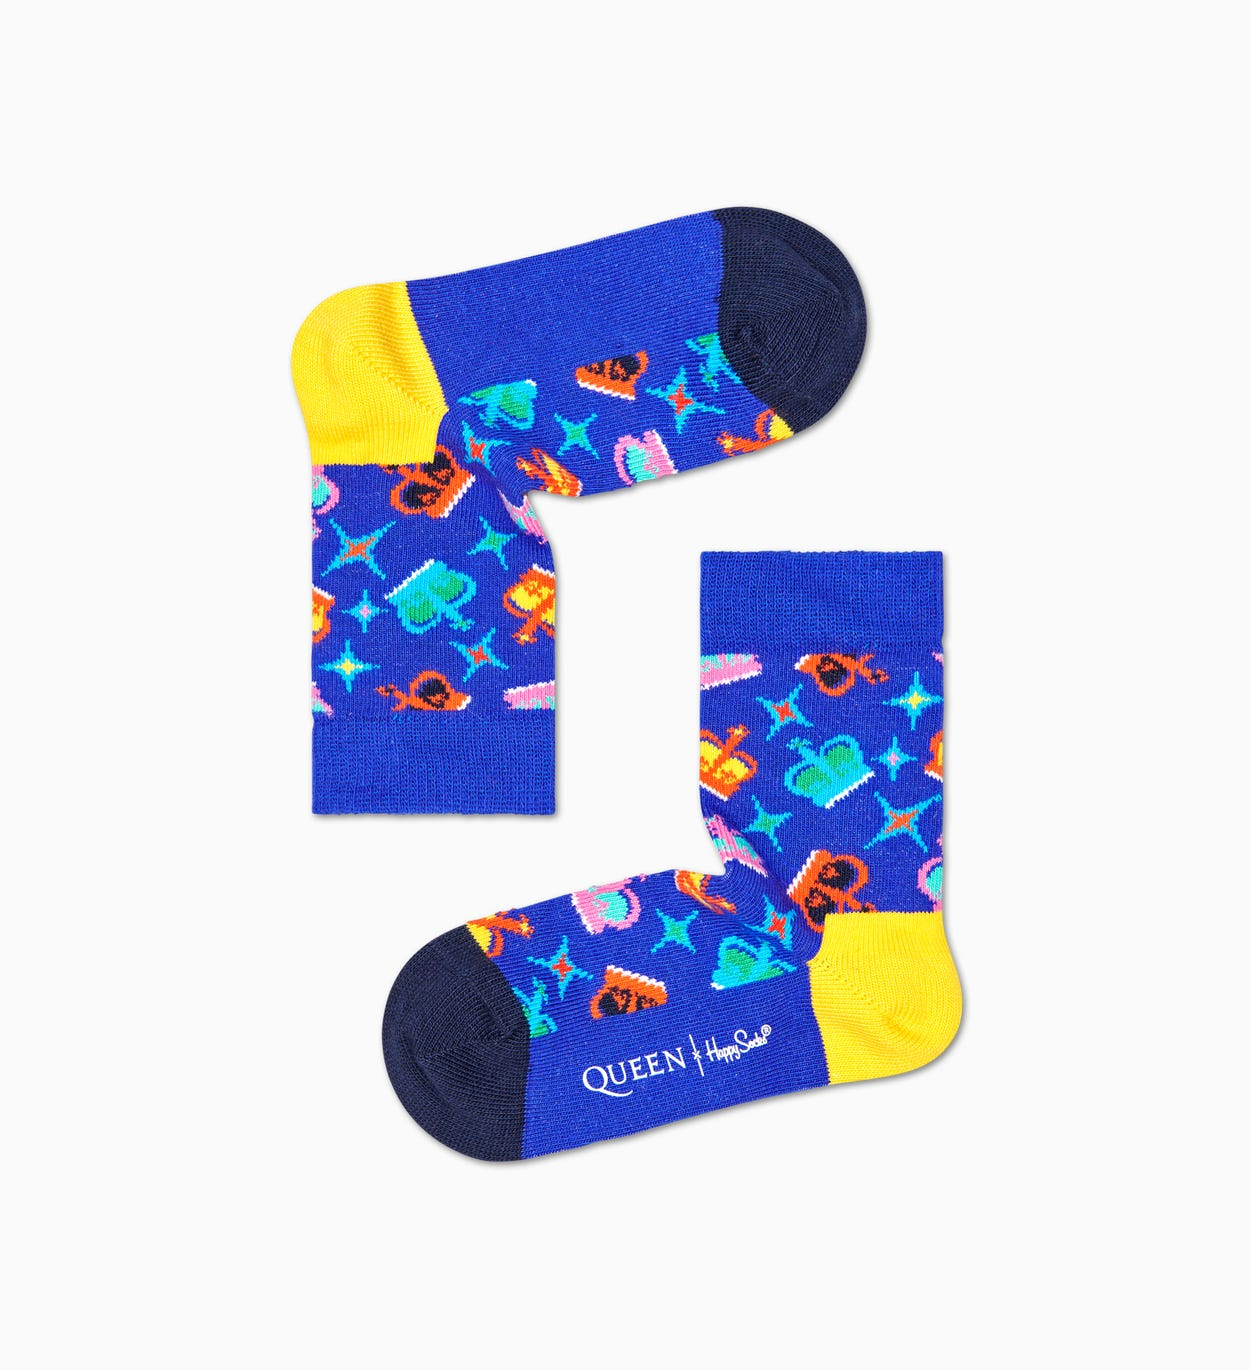 Queen x Happy Socks: 4-Pack Gift box for kids